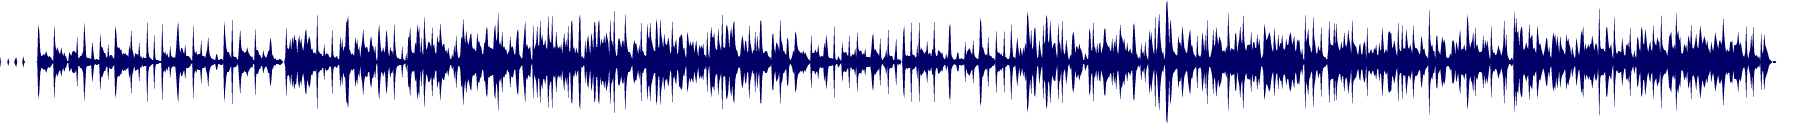 waveform of track #70056